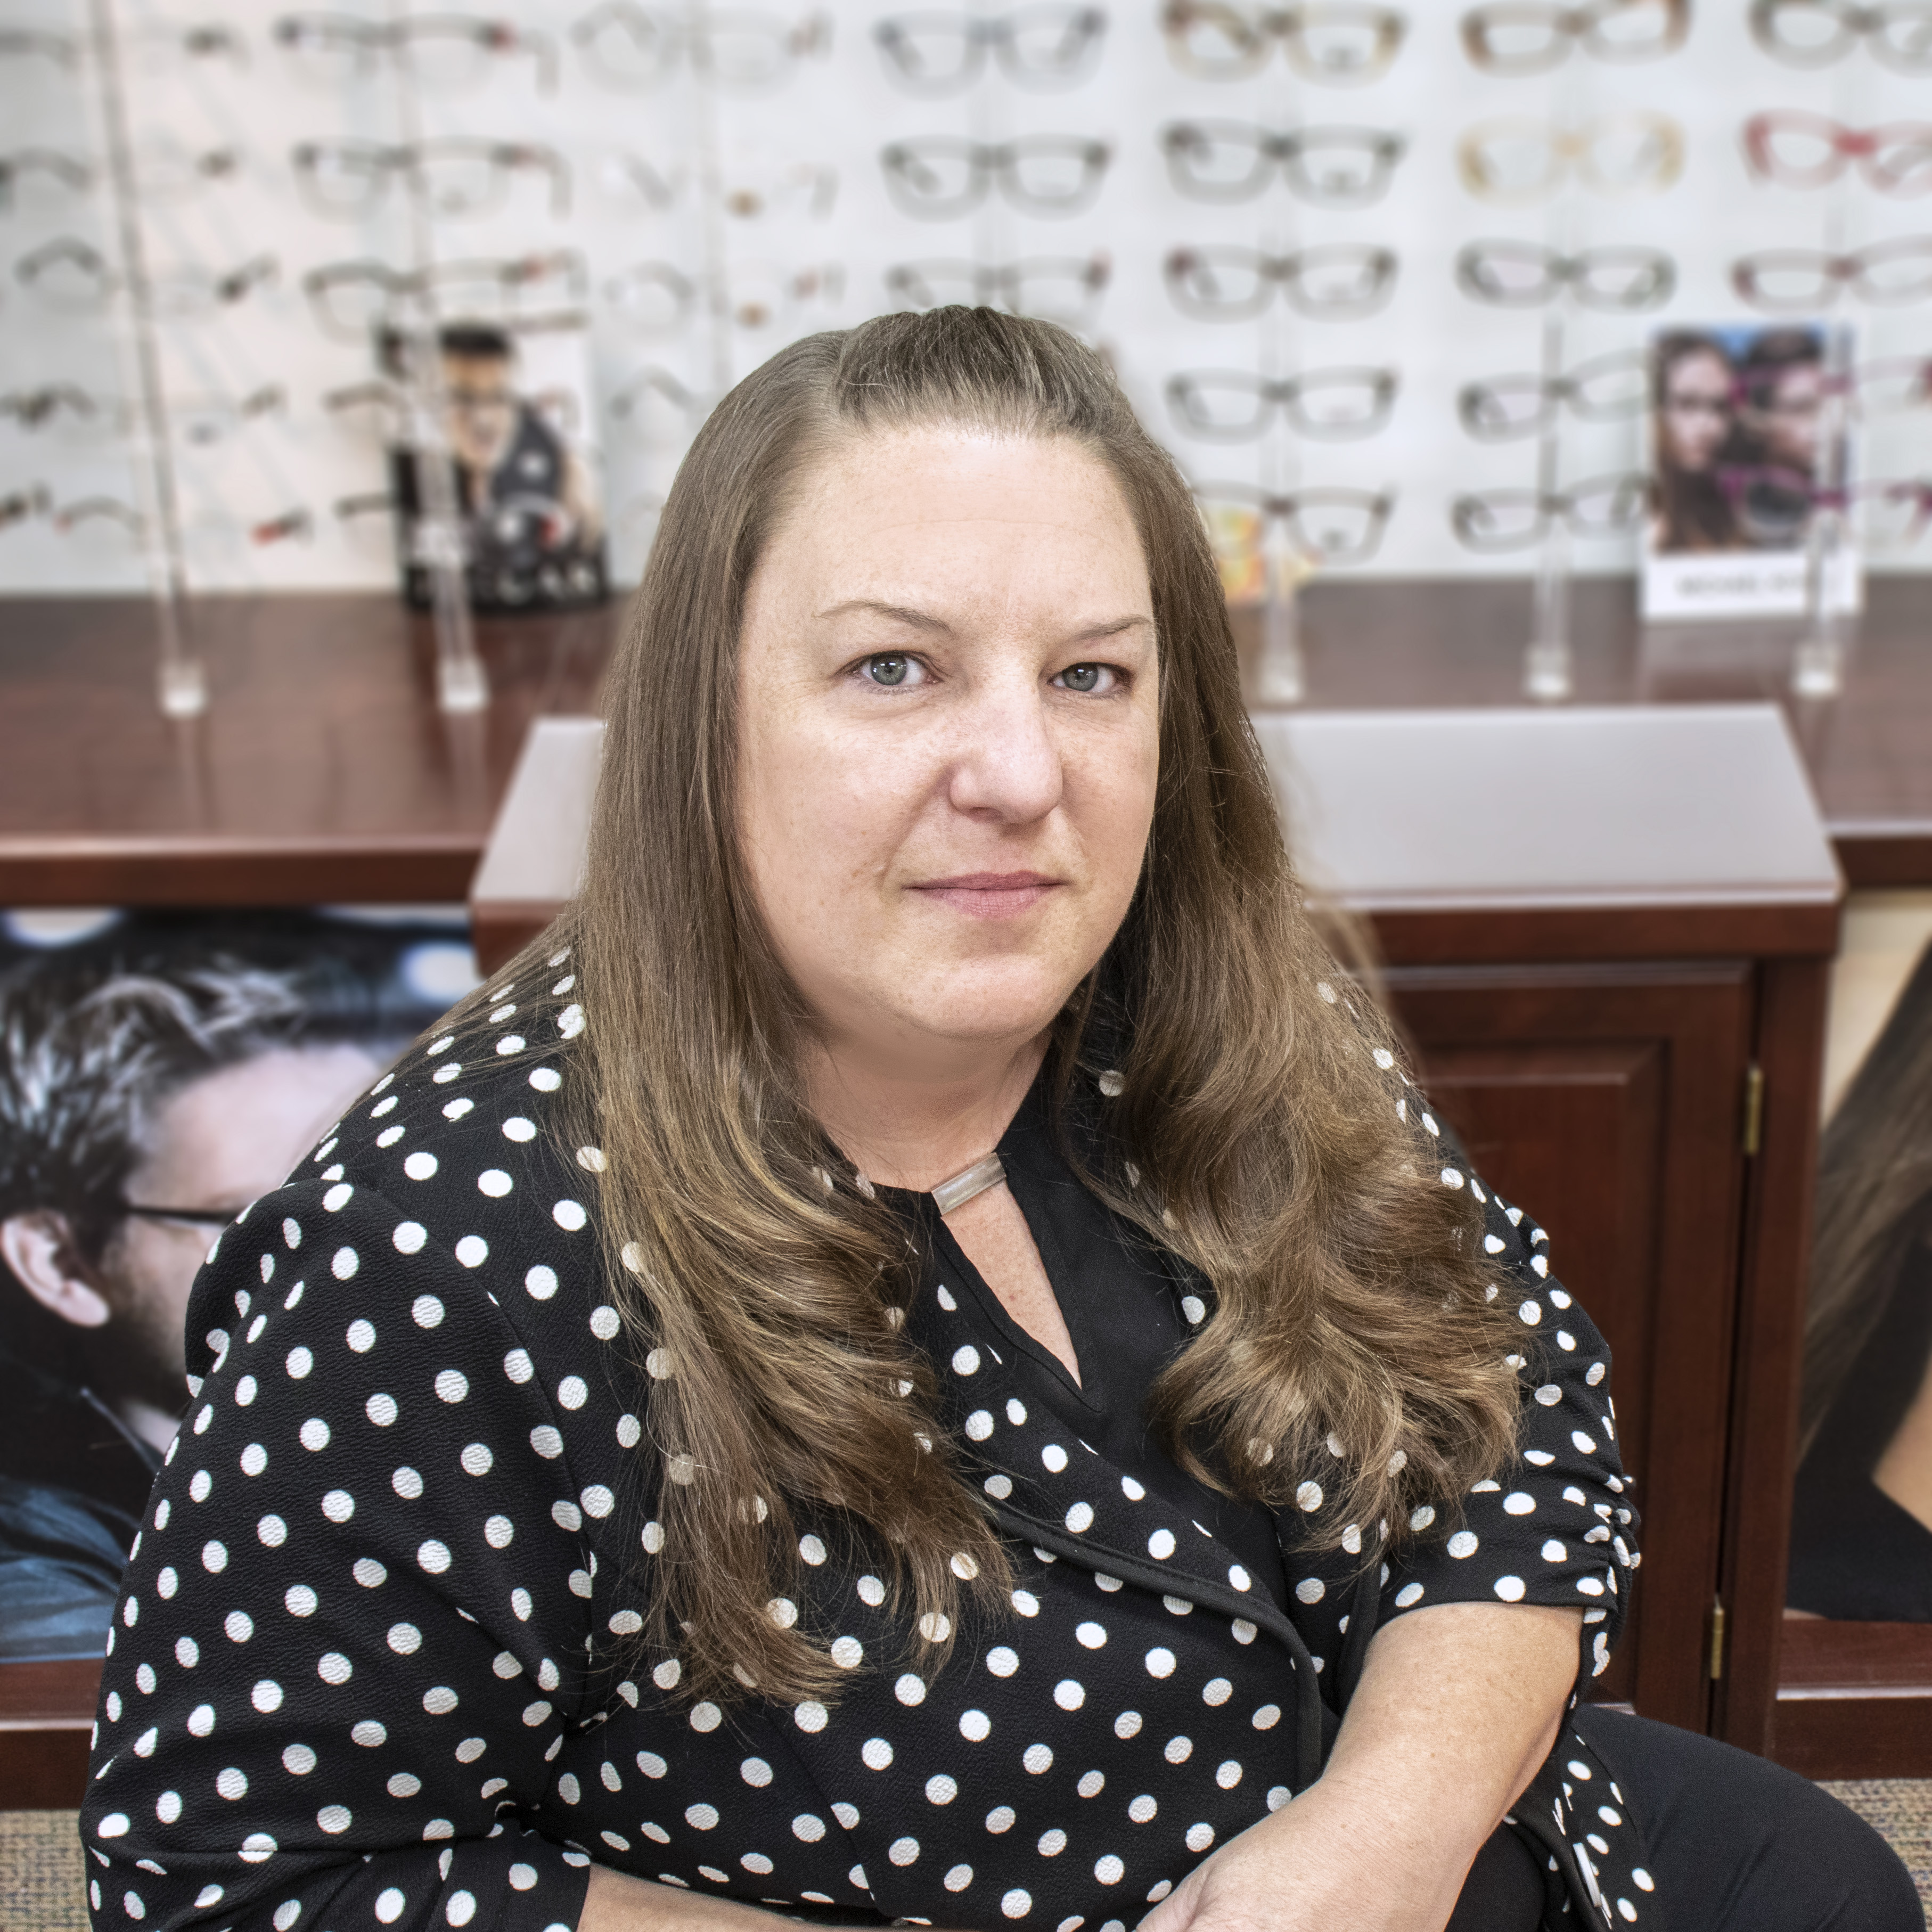 Photo of Debbi Martini, NYS Licensed Optician and Retail Director of Rochester Optical